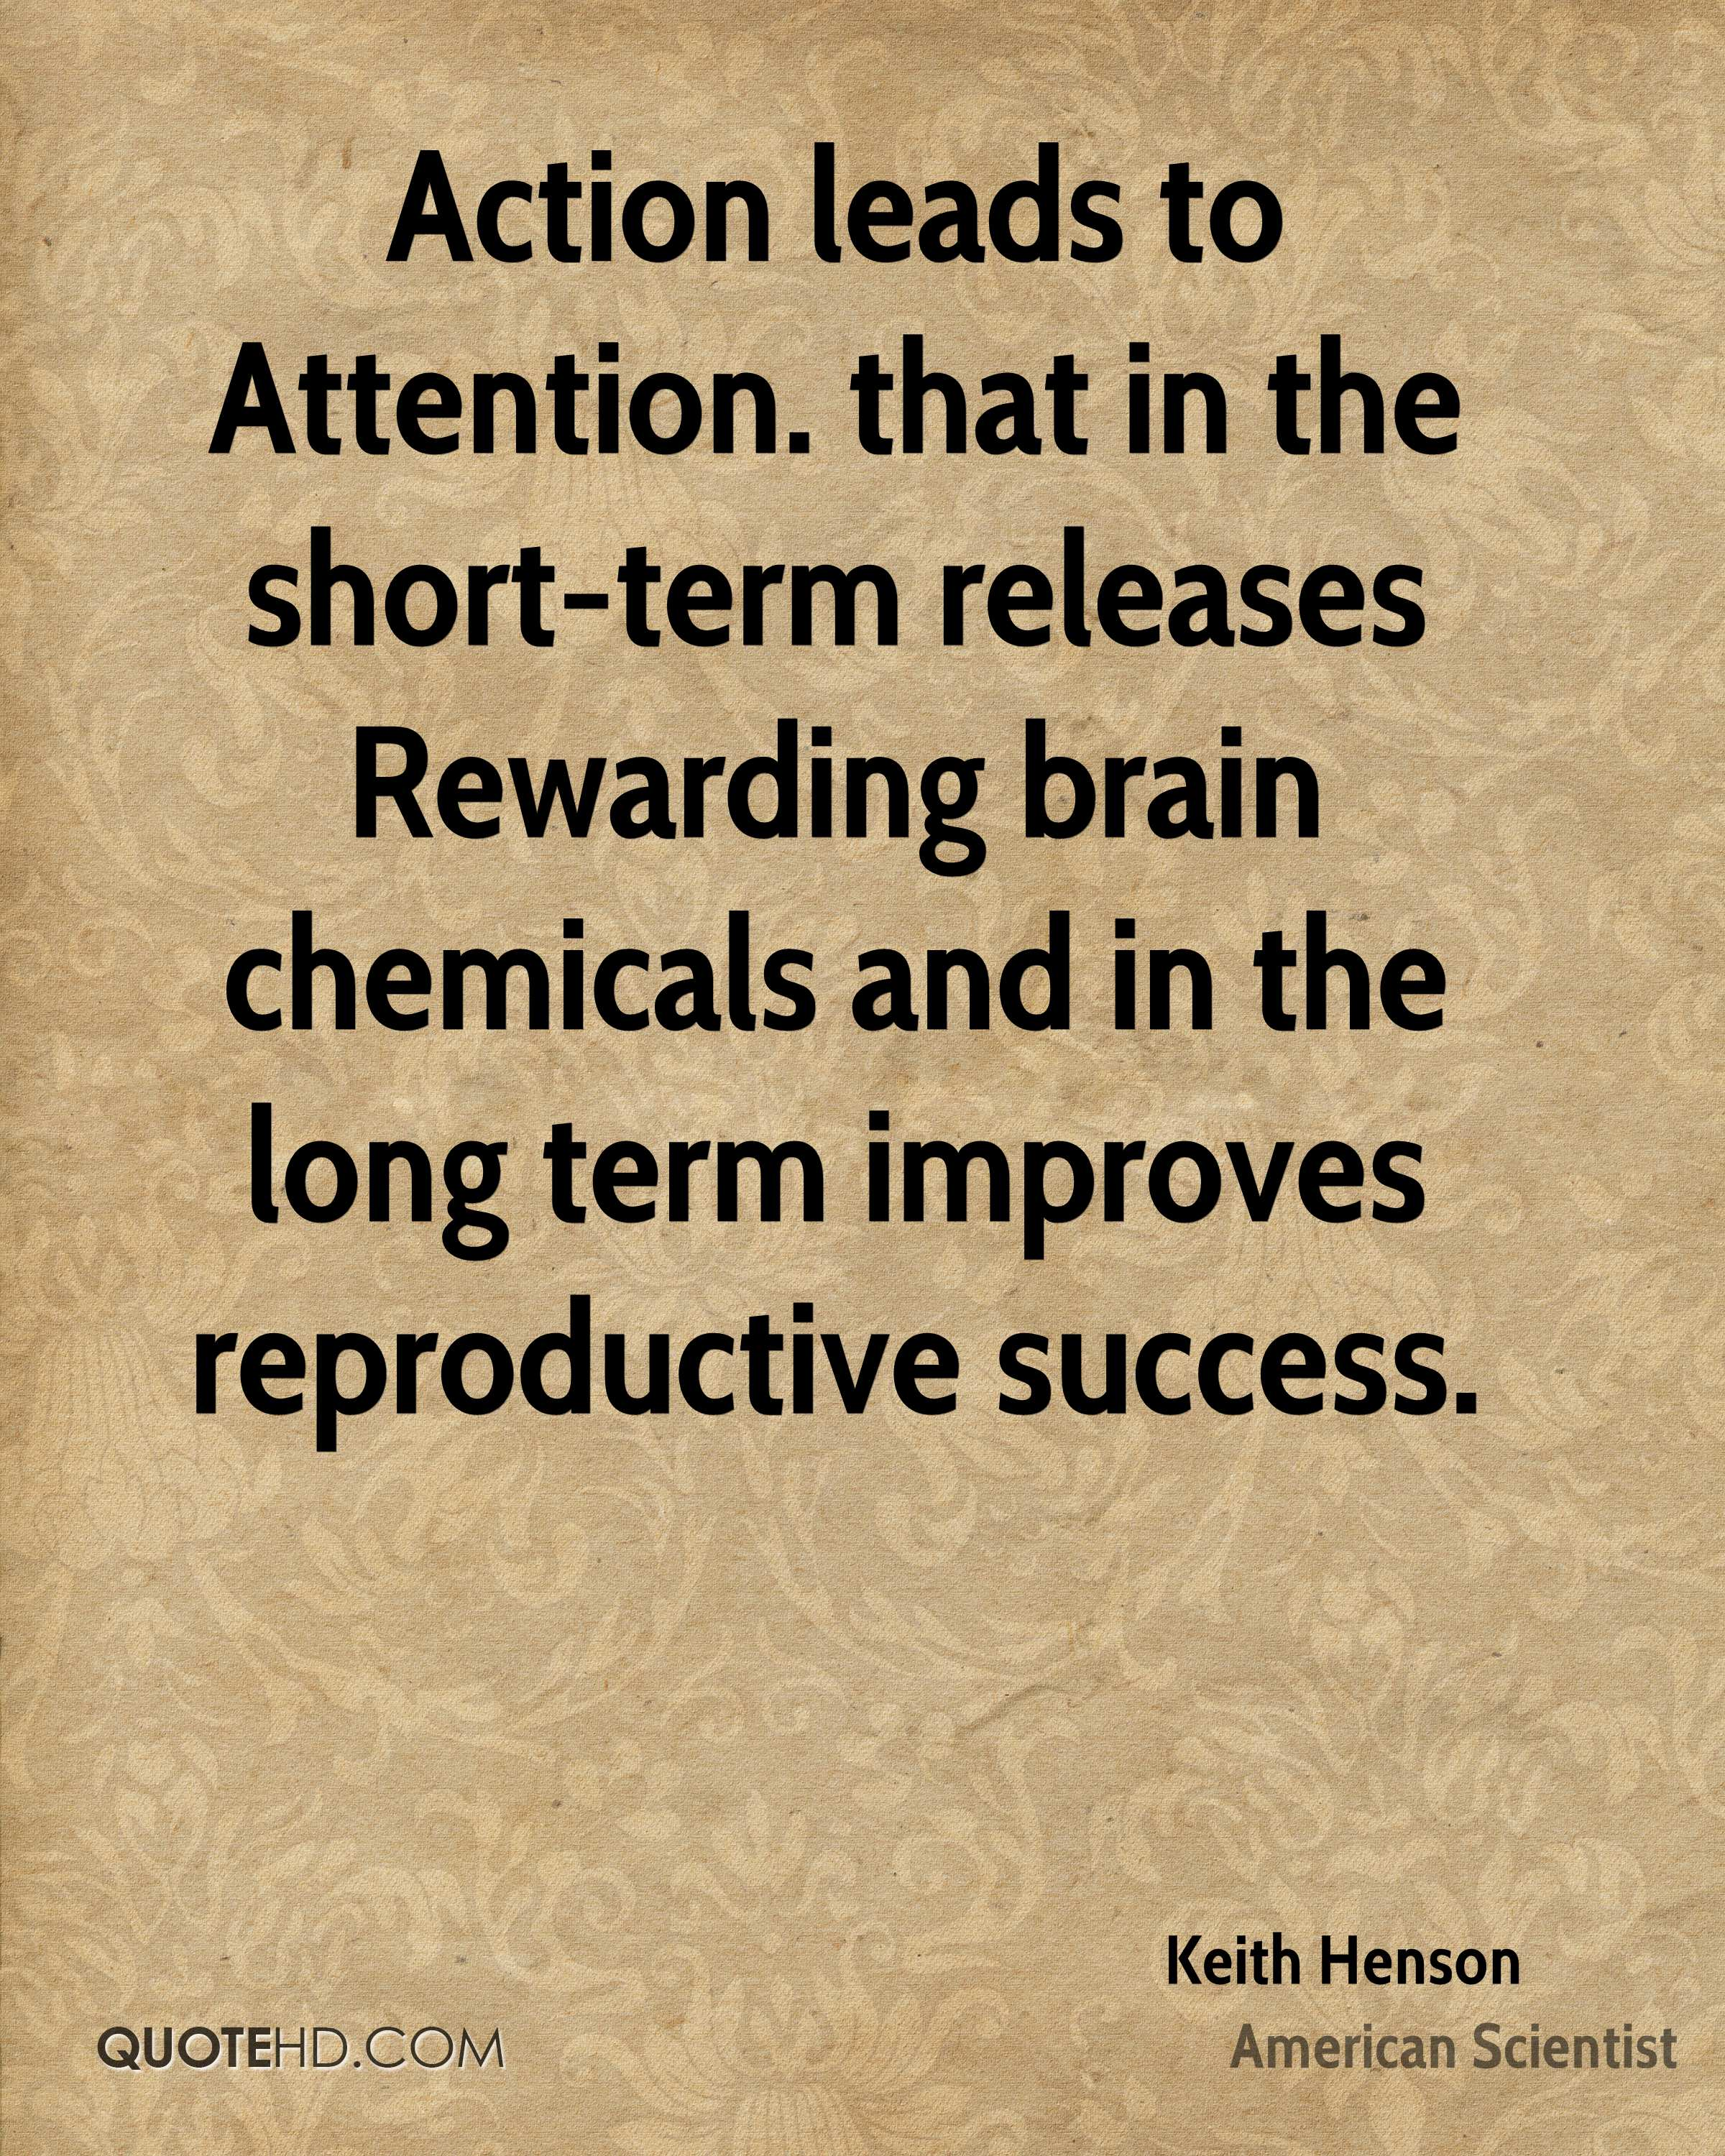 Action leads to Attention. that in the short-term releases Rewarding brain chemicals and in the long term improves reproductive success.